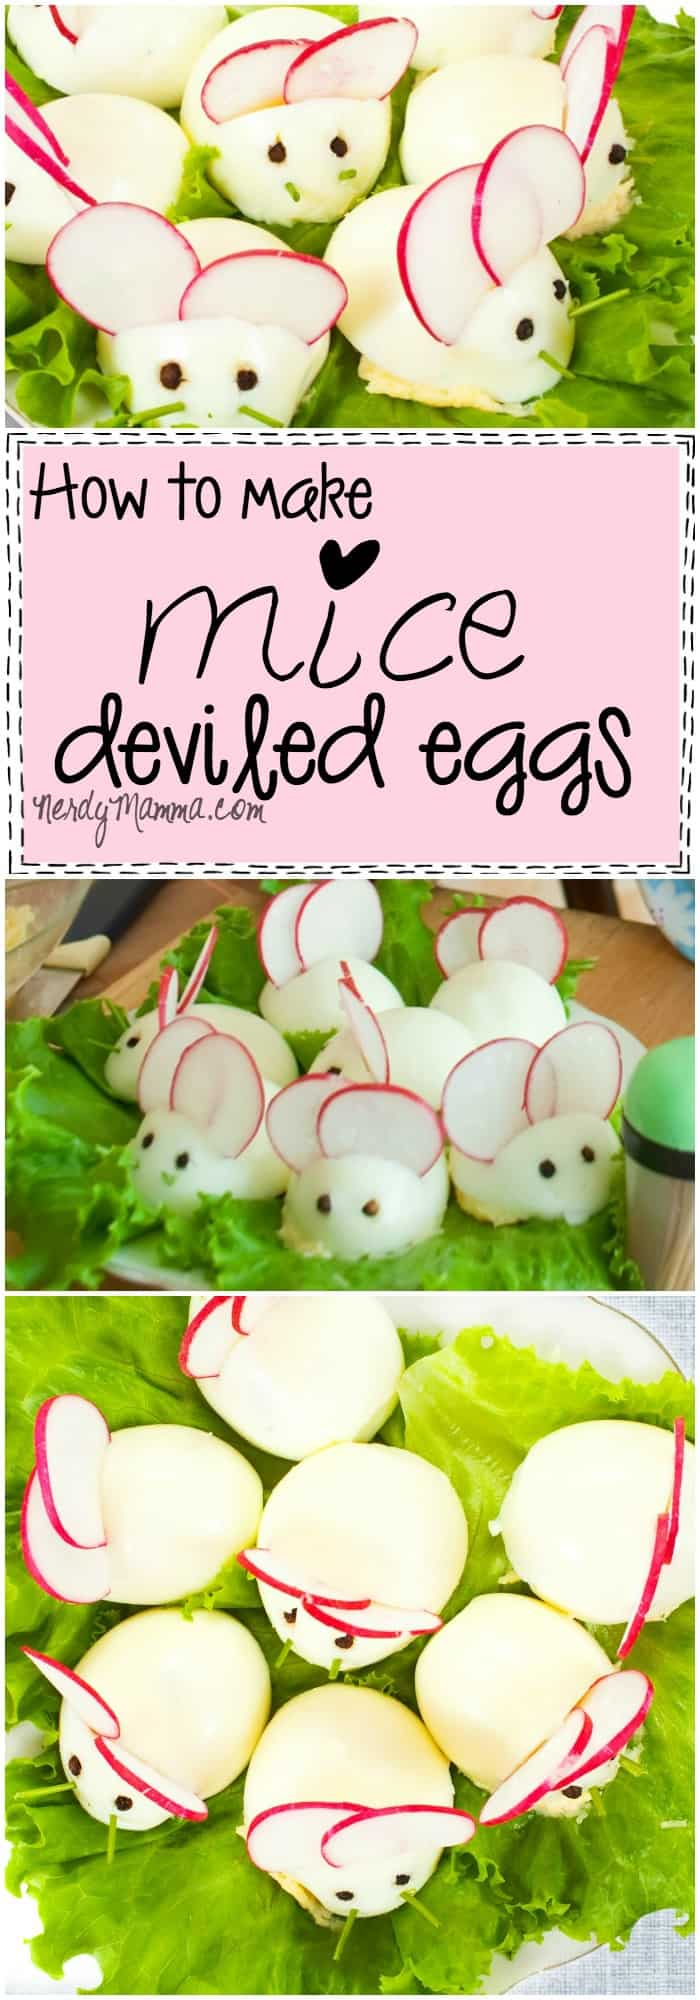 This easy tutorial for mice deviled eggs is so cute! Perfect for Easter...or Halloween...not sure which. LOL!